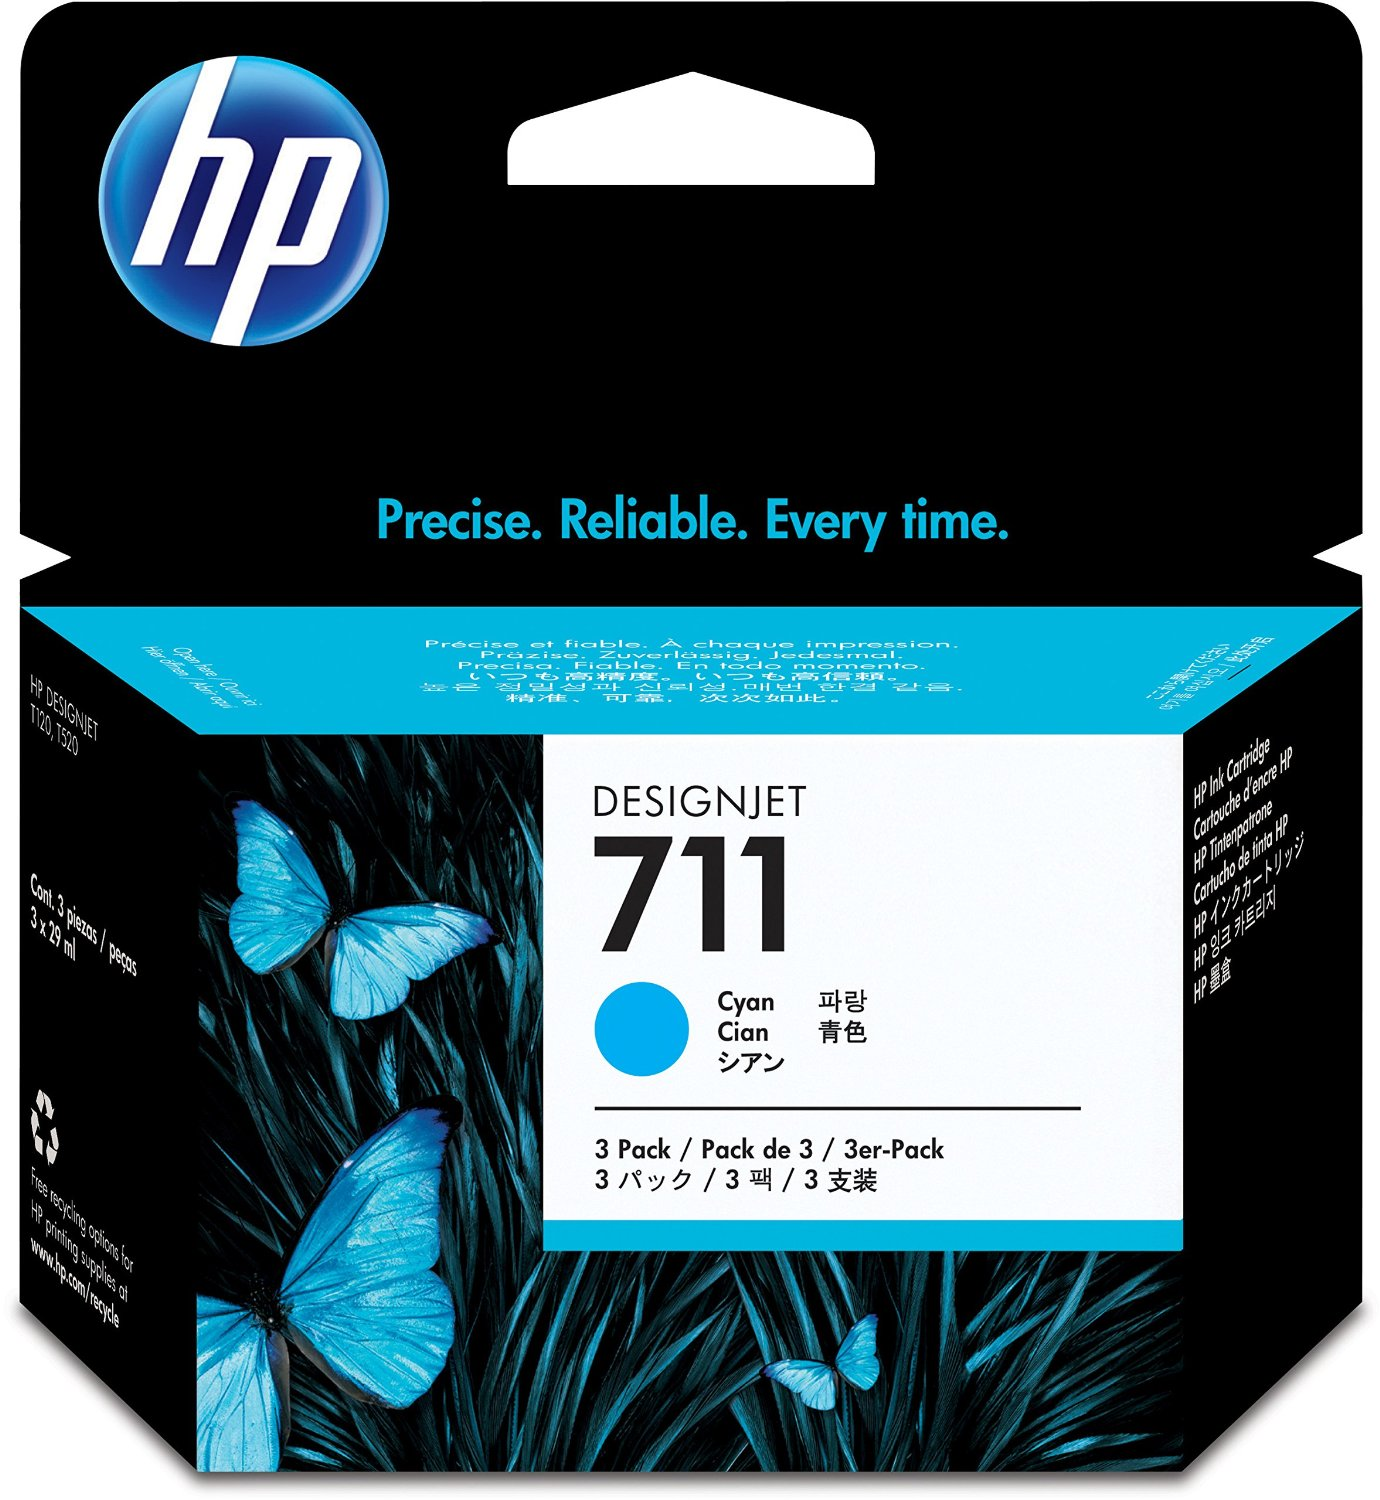 HP 711 Cyan Ink Cartridges CZ134A, 3/Pack